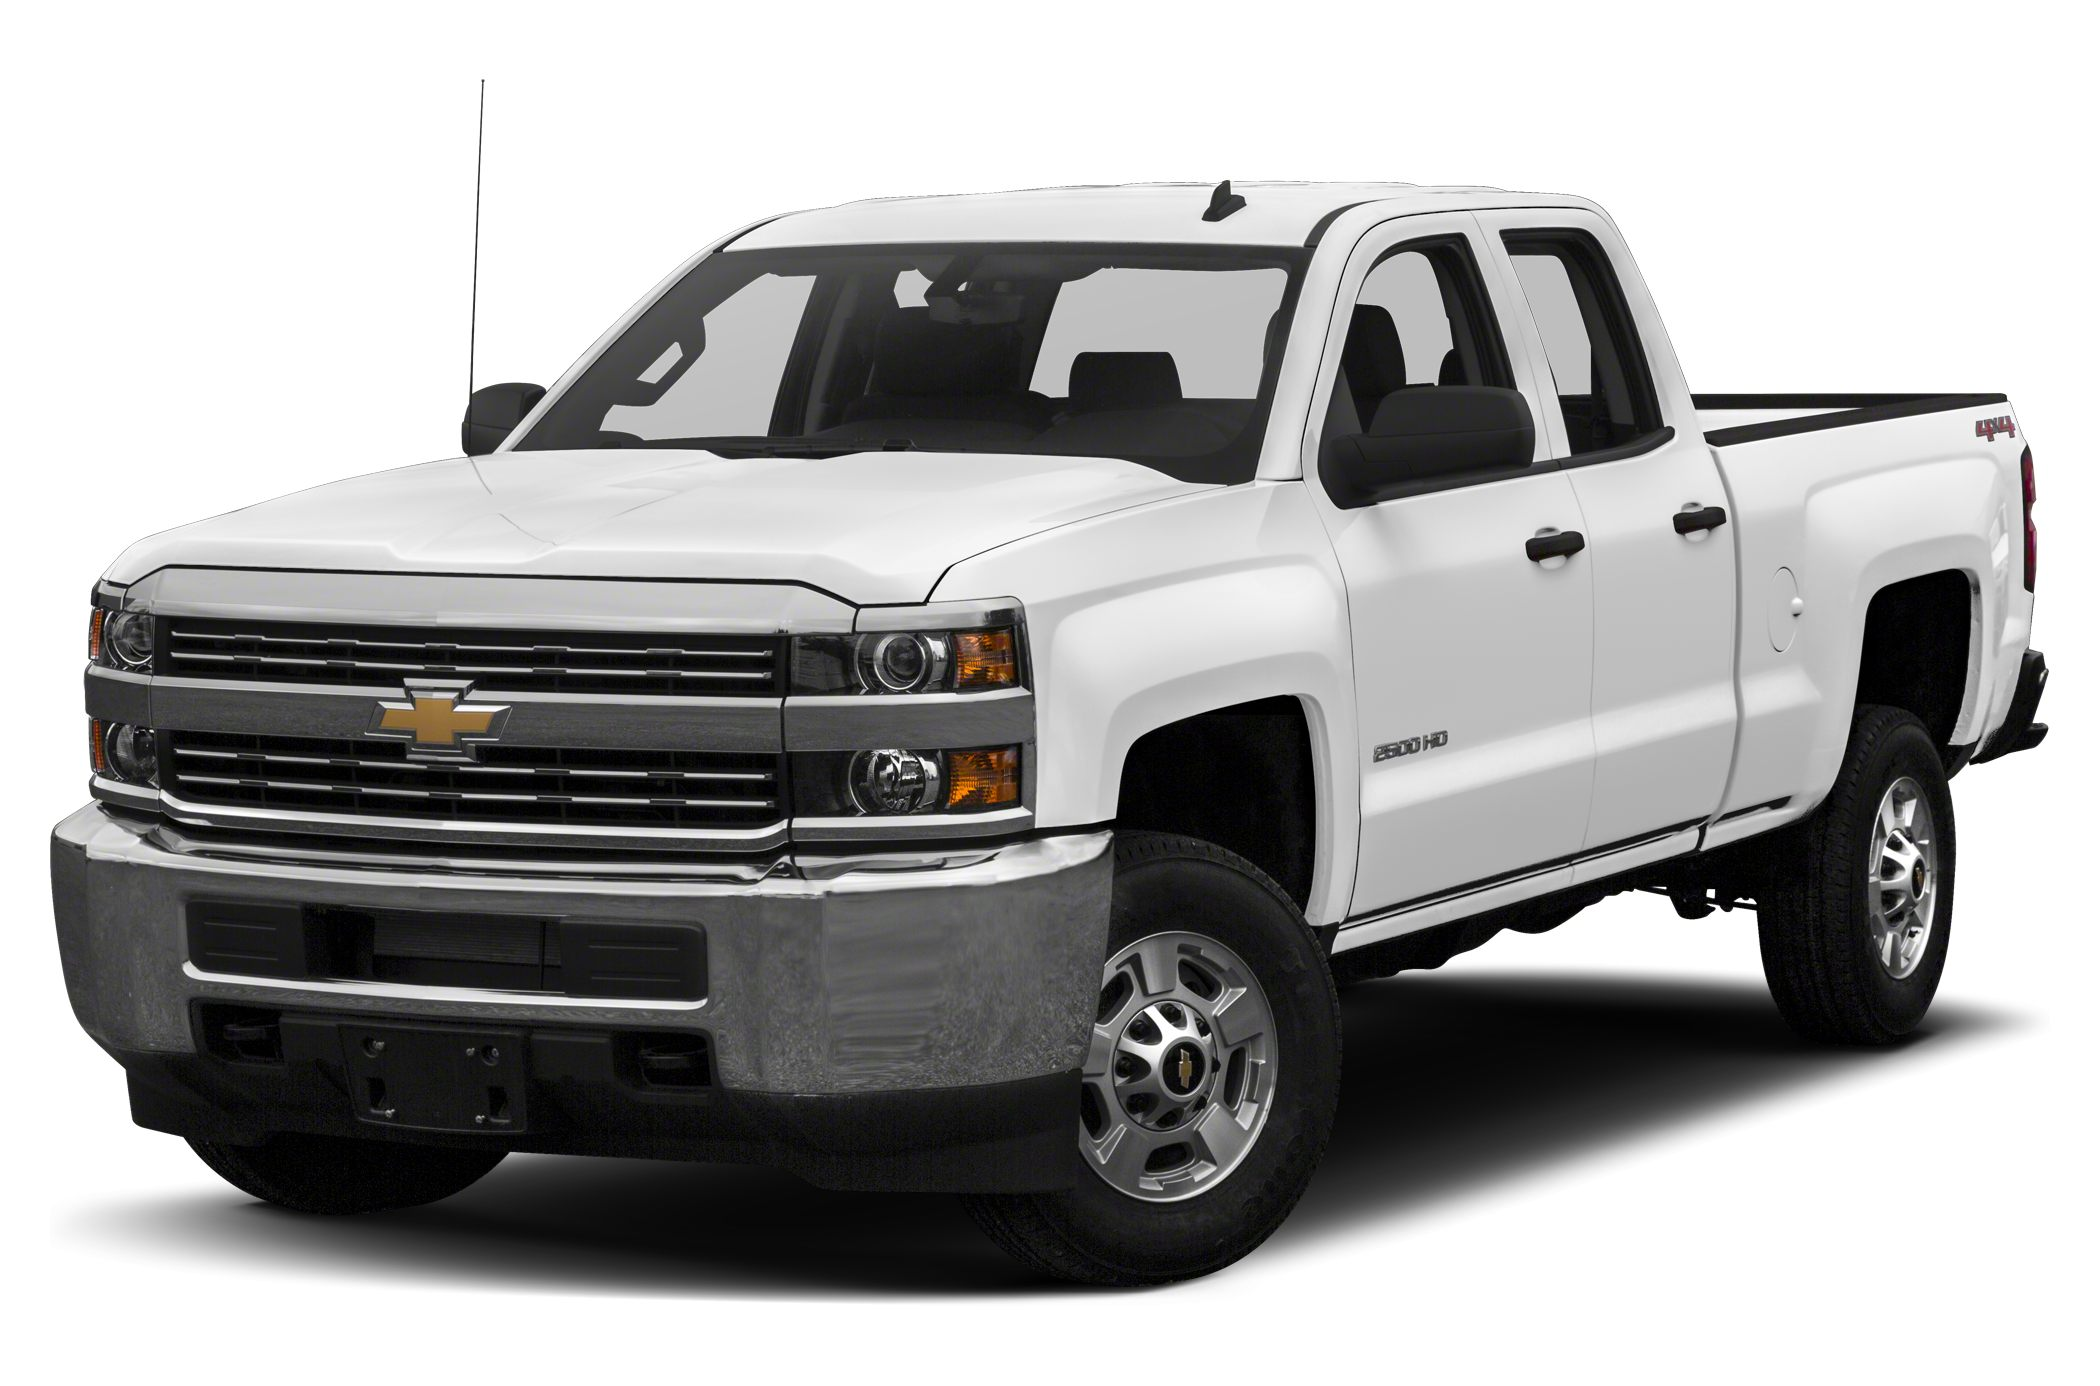 2015 Chevrolet Silverado 2500 LT Crew Cab Pickup for sale in Westfield for $49,575 with 0 miles